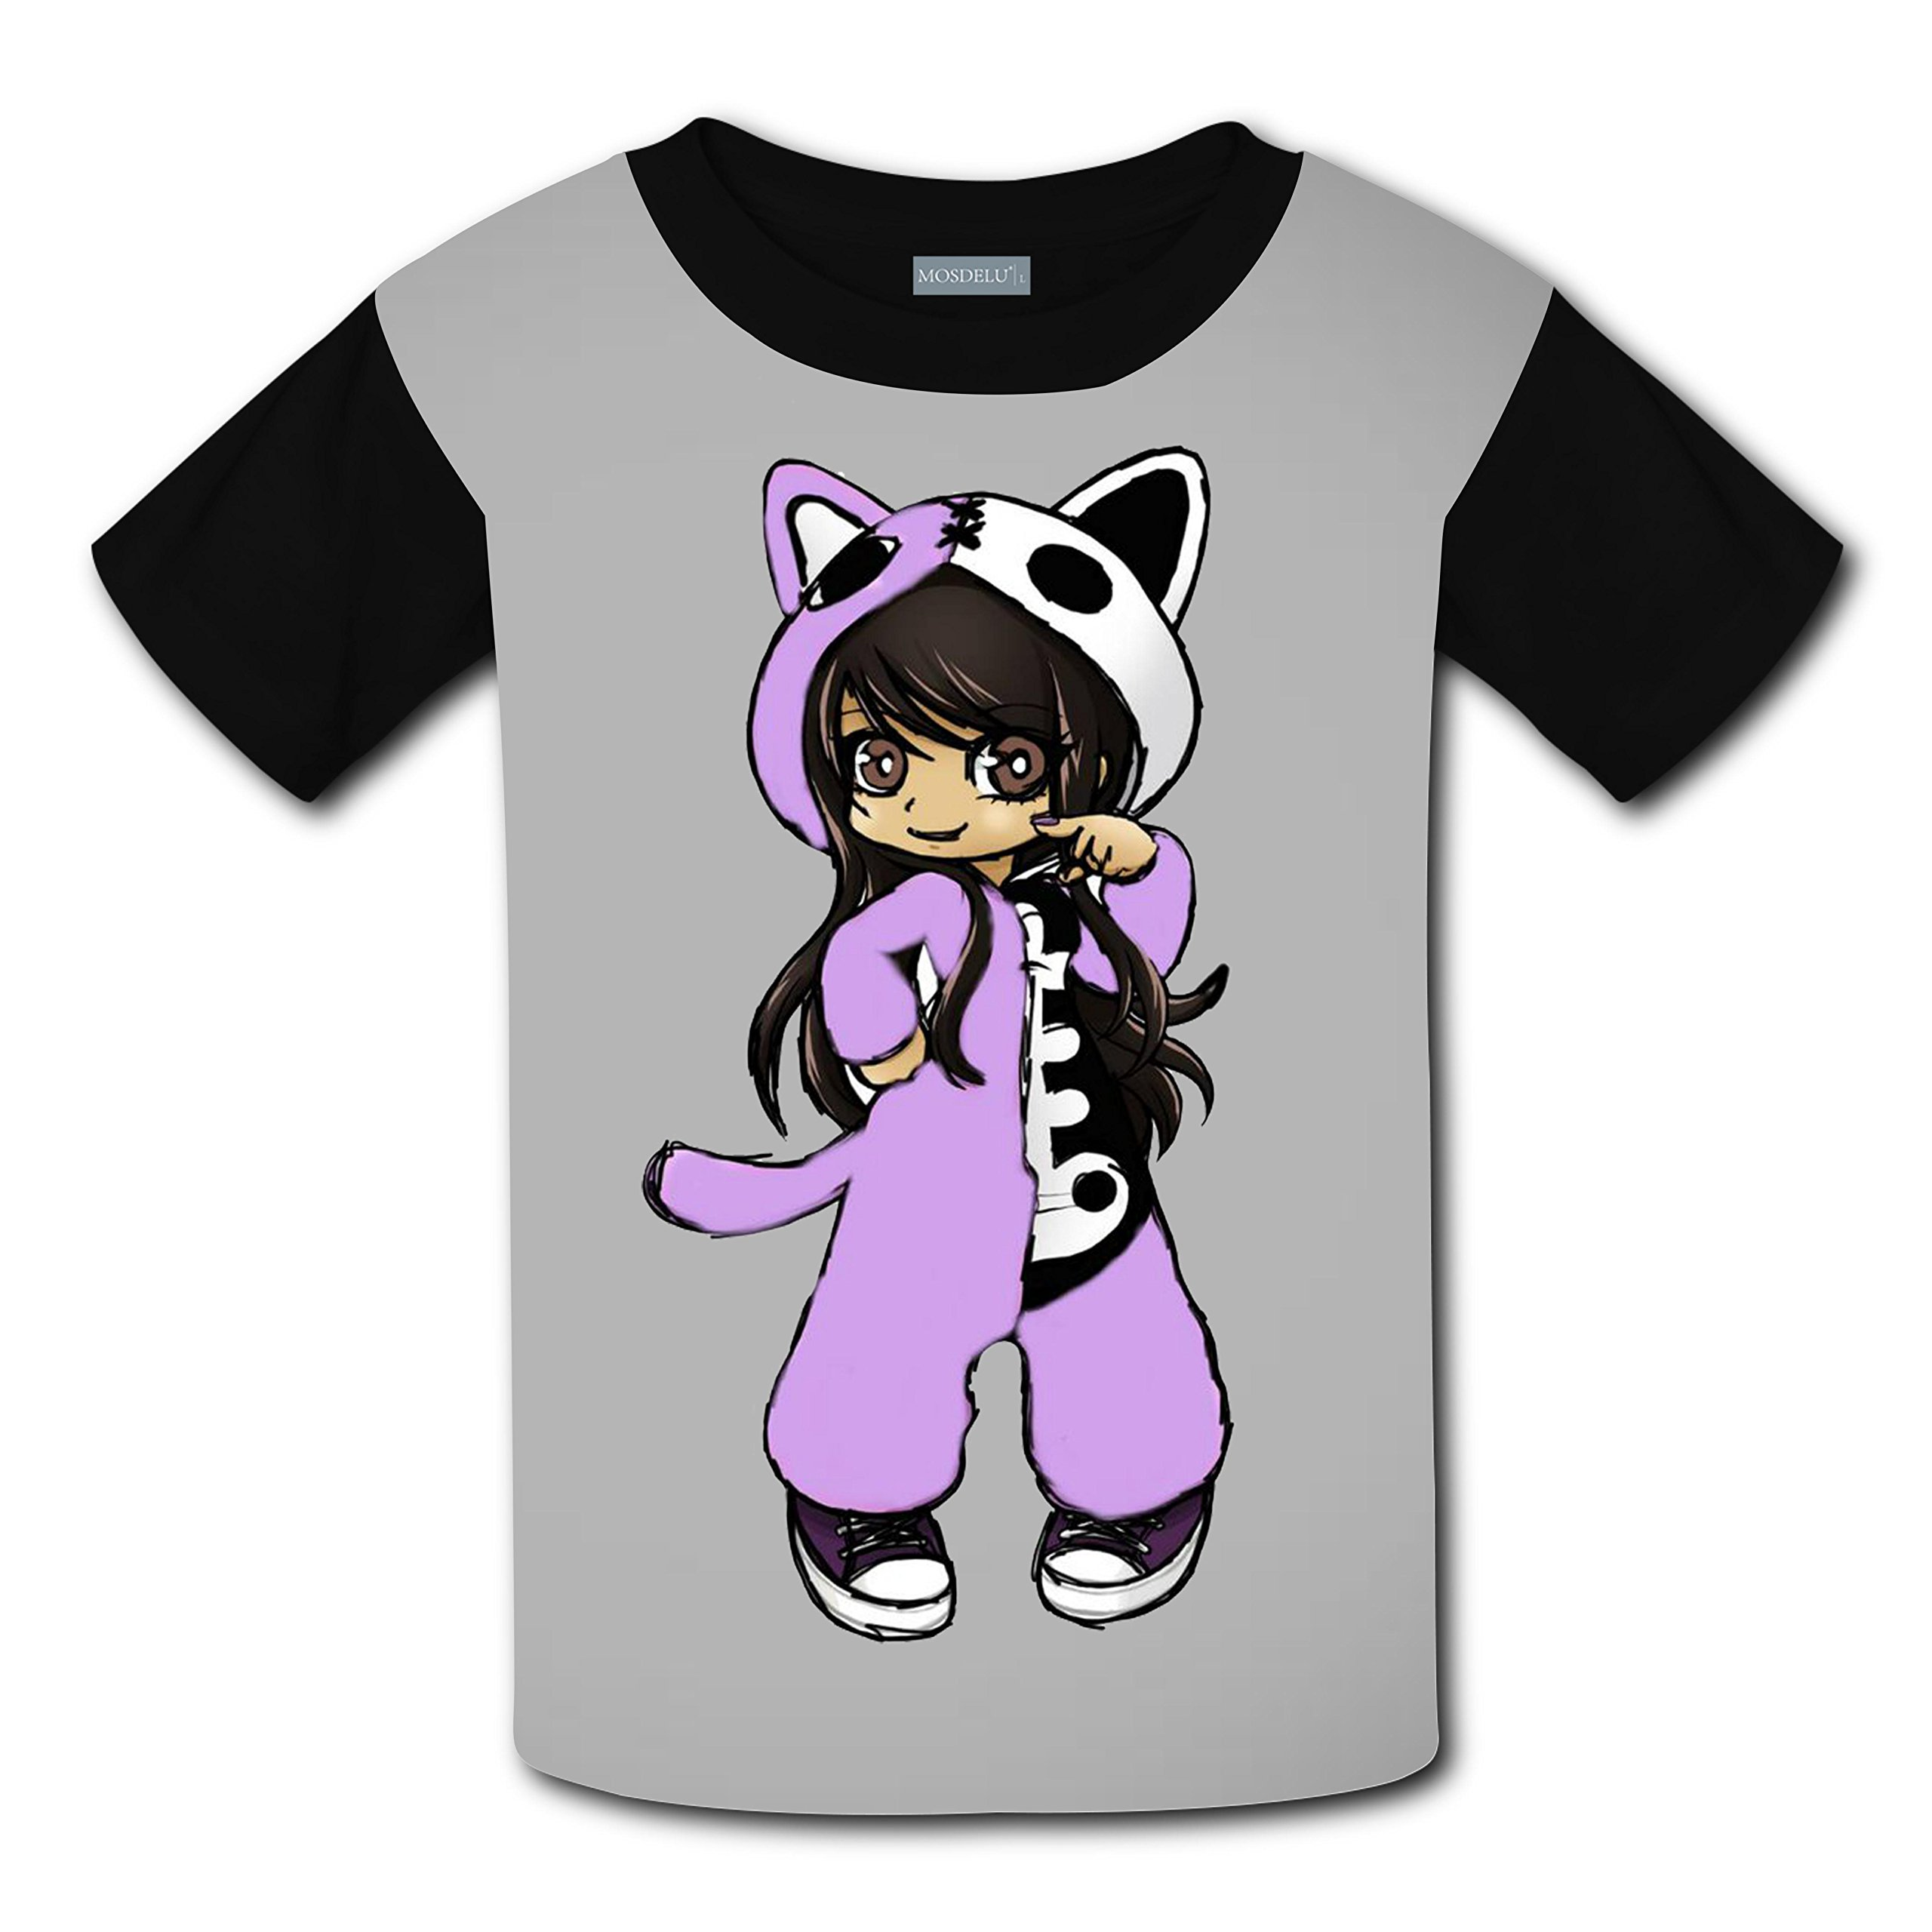 Unisex Kids Aphmau Cat 3D Printed Round Collar Short Sleeve T- Shirt